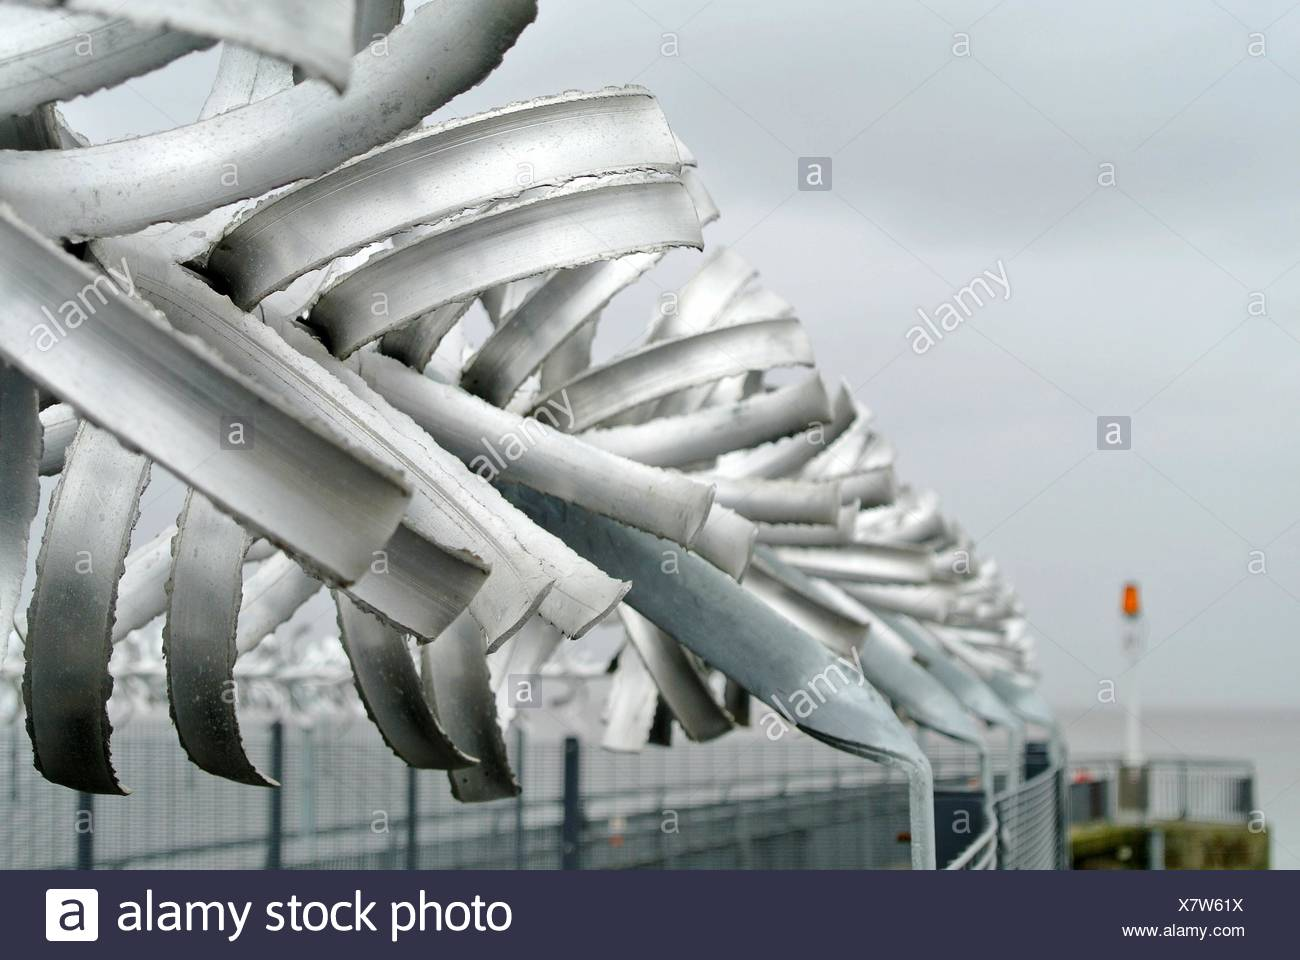 Close-Up Of Security Fence - Stock Image